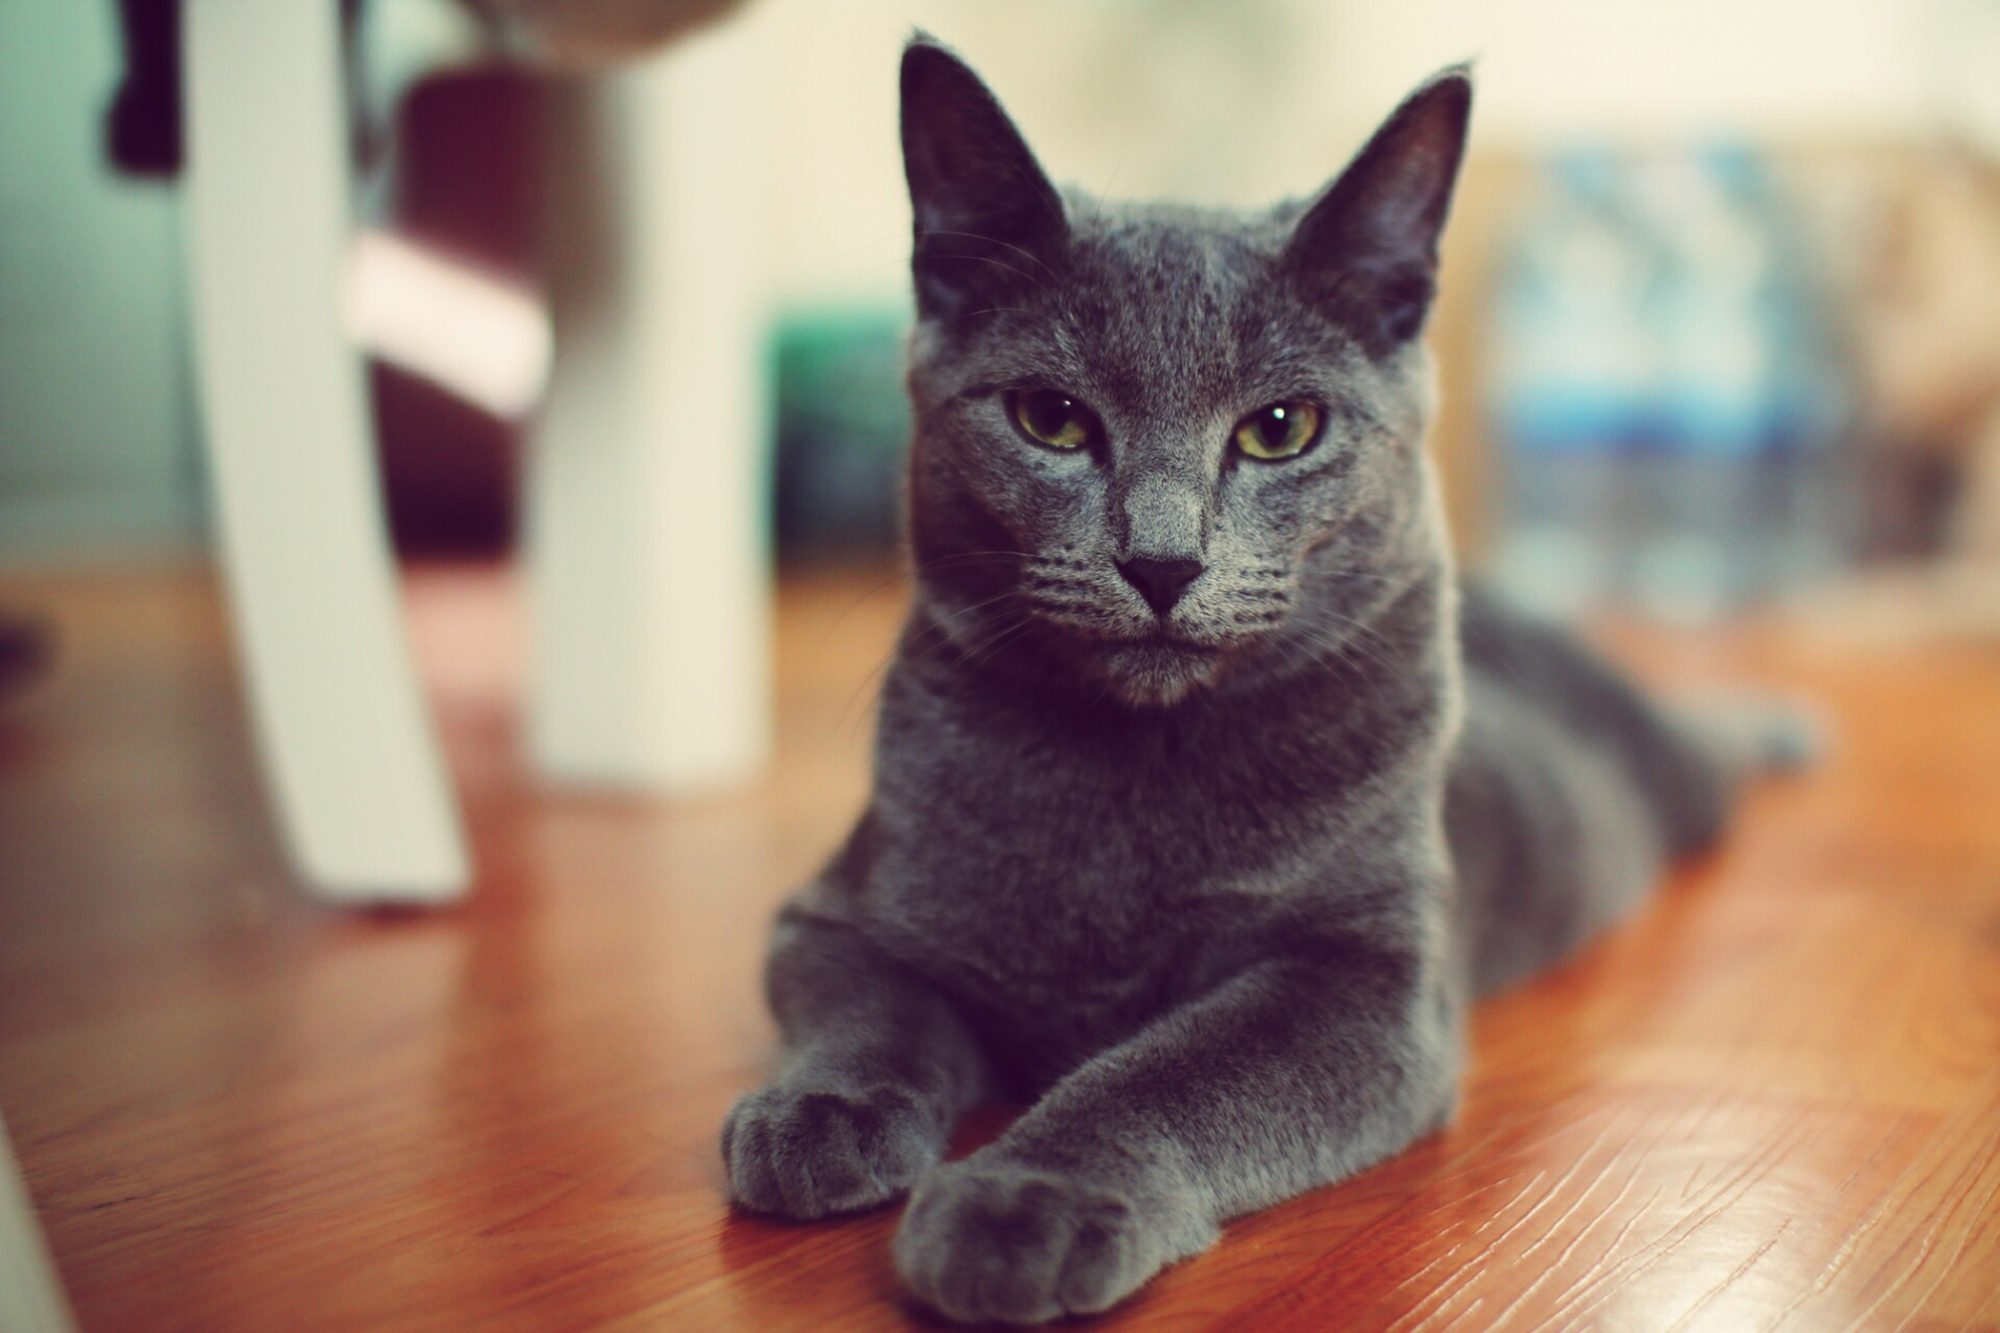 Portrait of Chartreux cat relaxing on wood floor